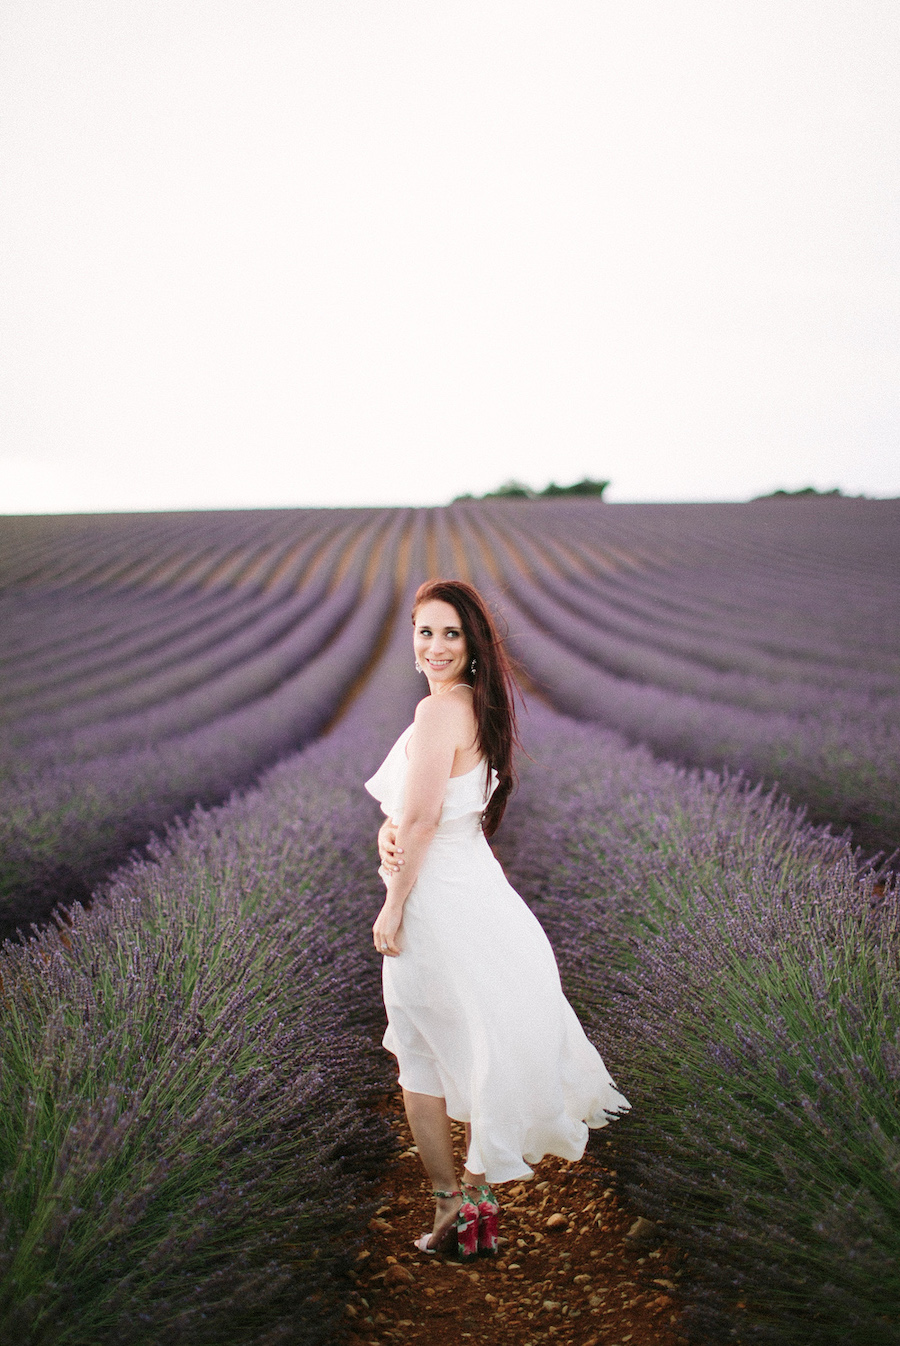 saya-photography-pre-wedding-provence-lavander-field-28.jpg